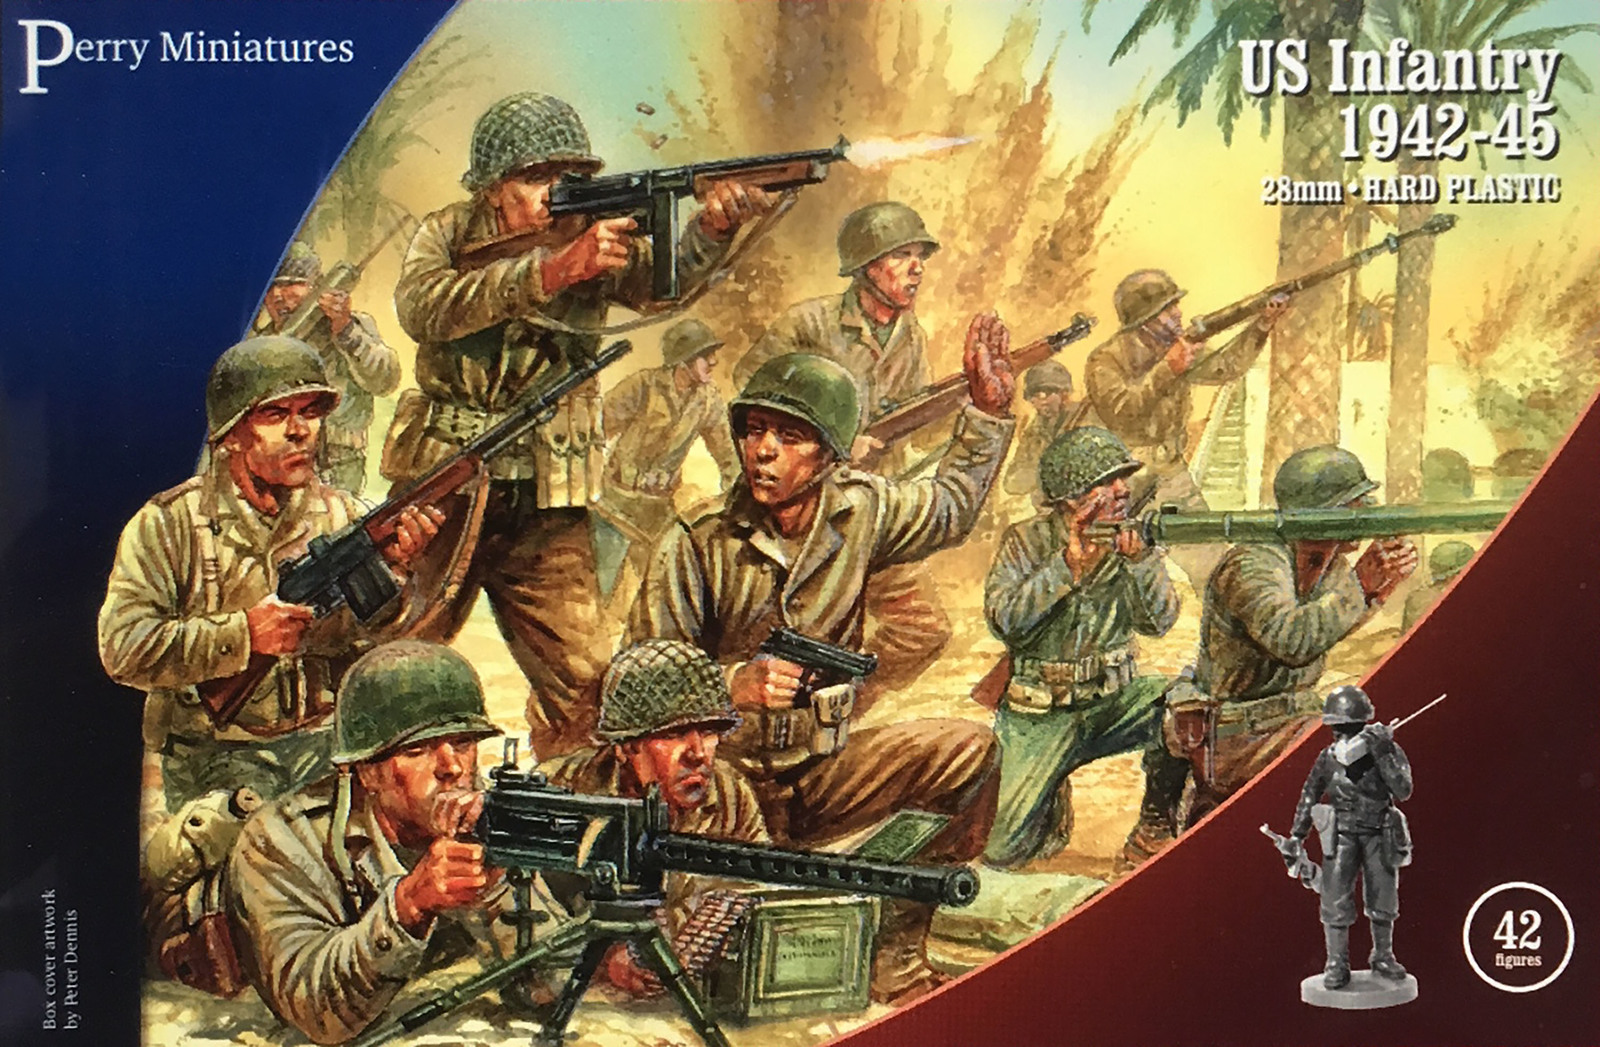 Perry Miniatures: US Infantry 1942-45 image